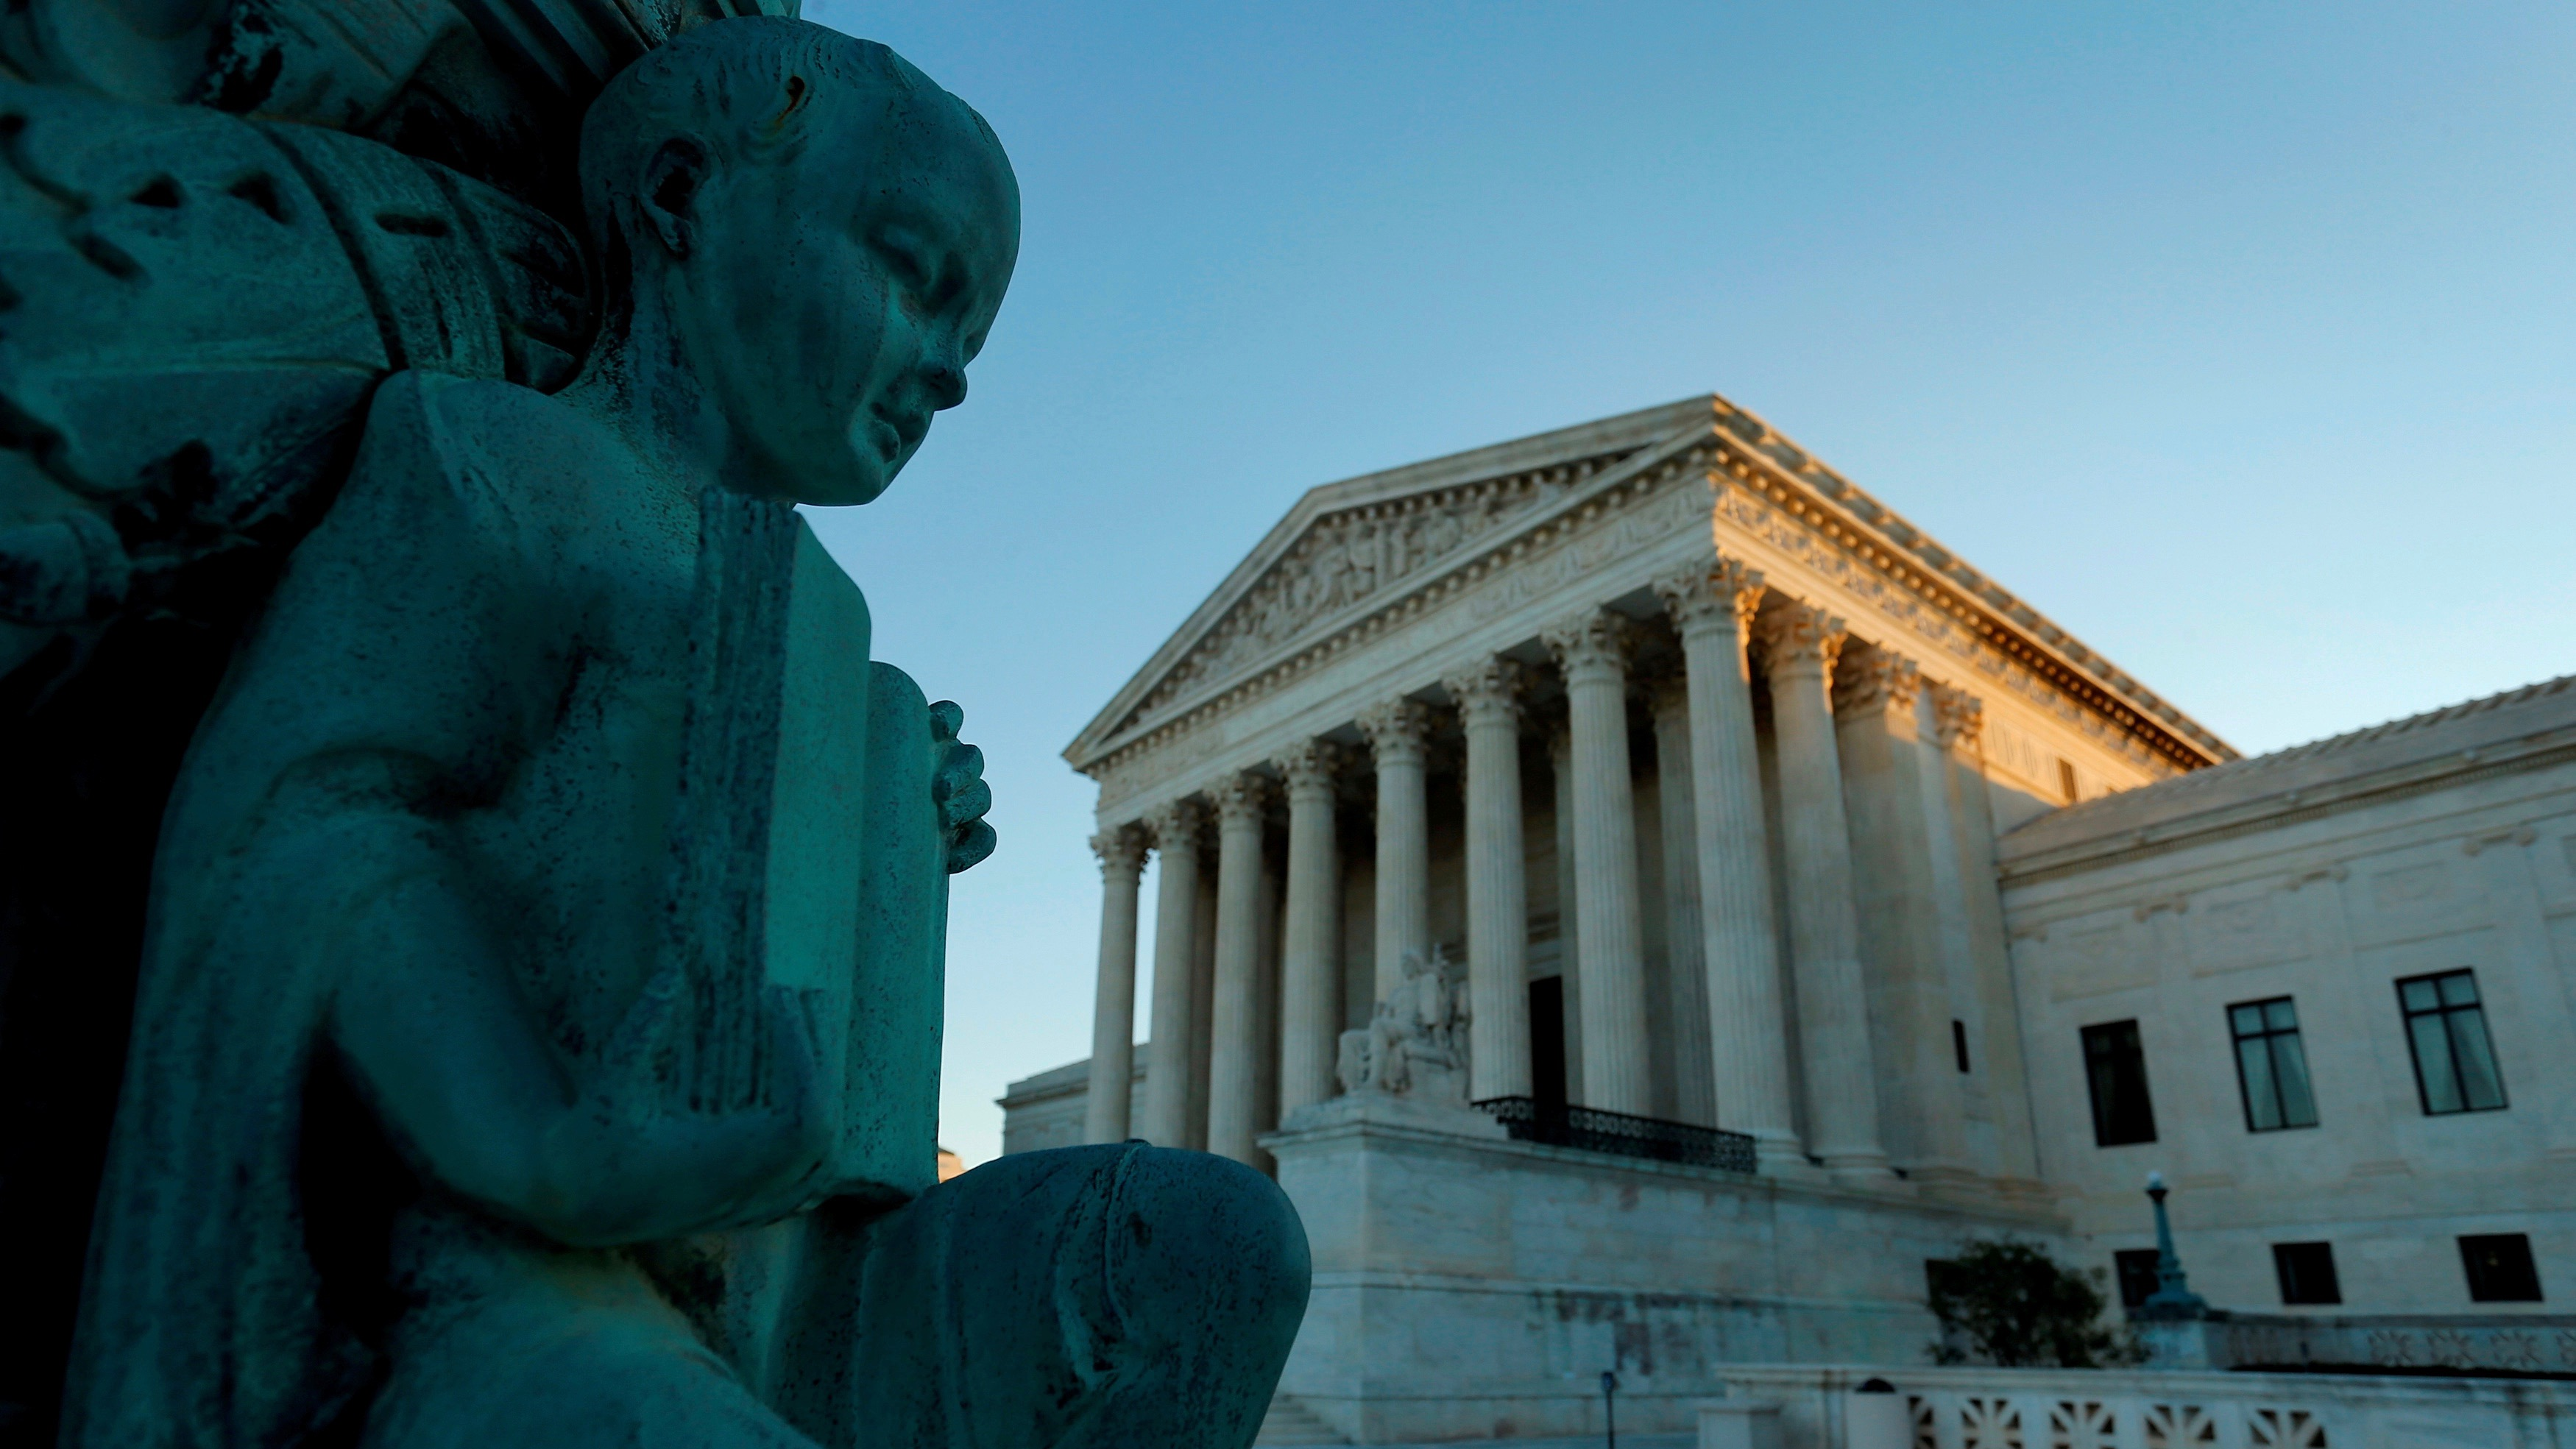 US Supreme Court and nearby statute of child with book.